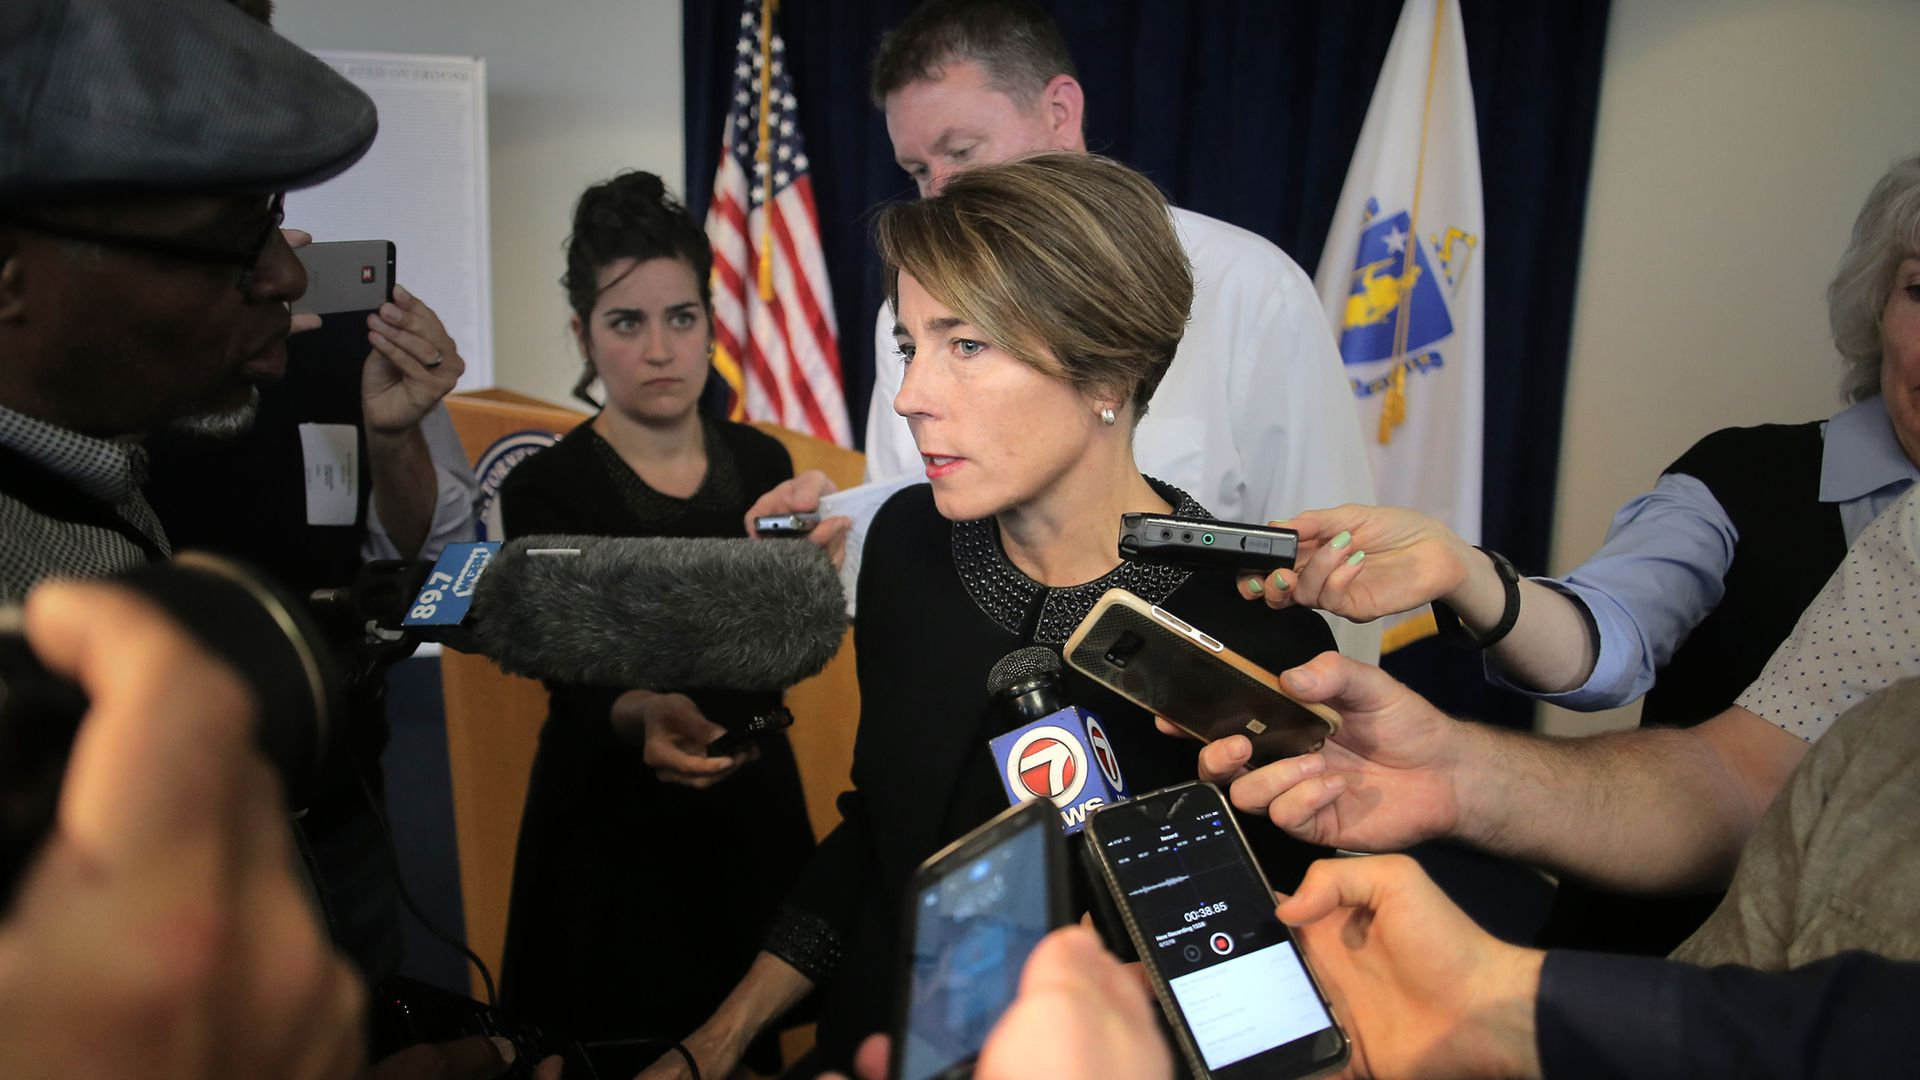 Massachusetts AG MAura HEaly answers questions from press